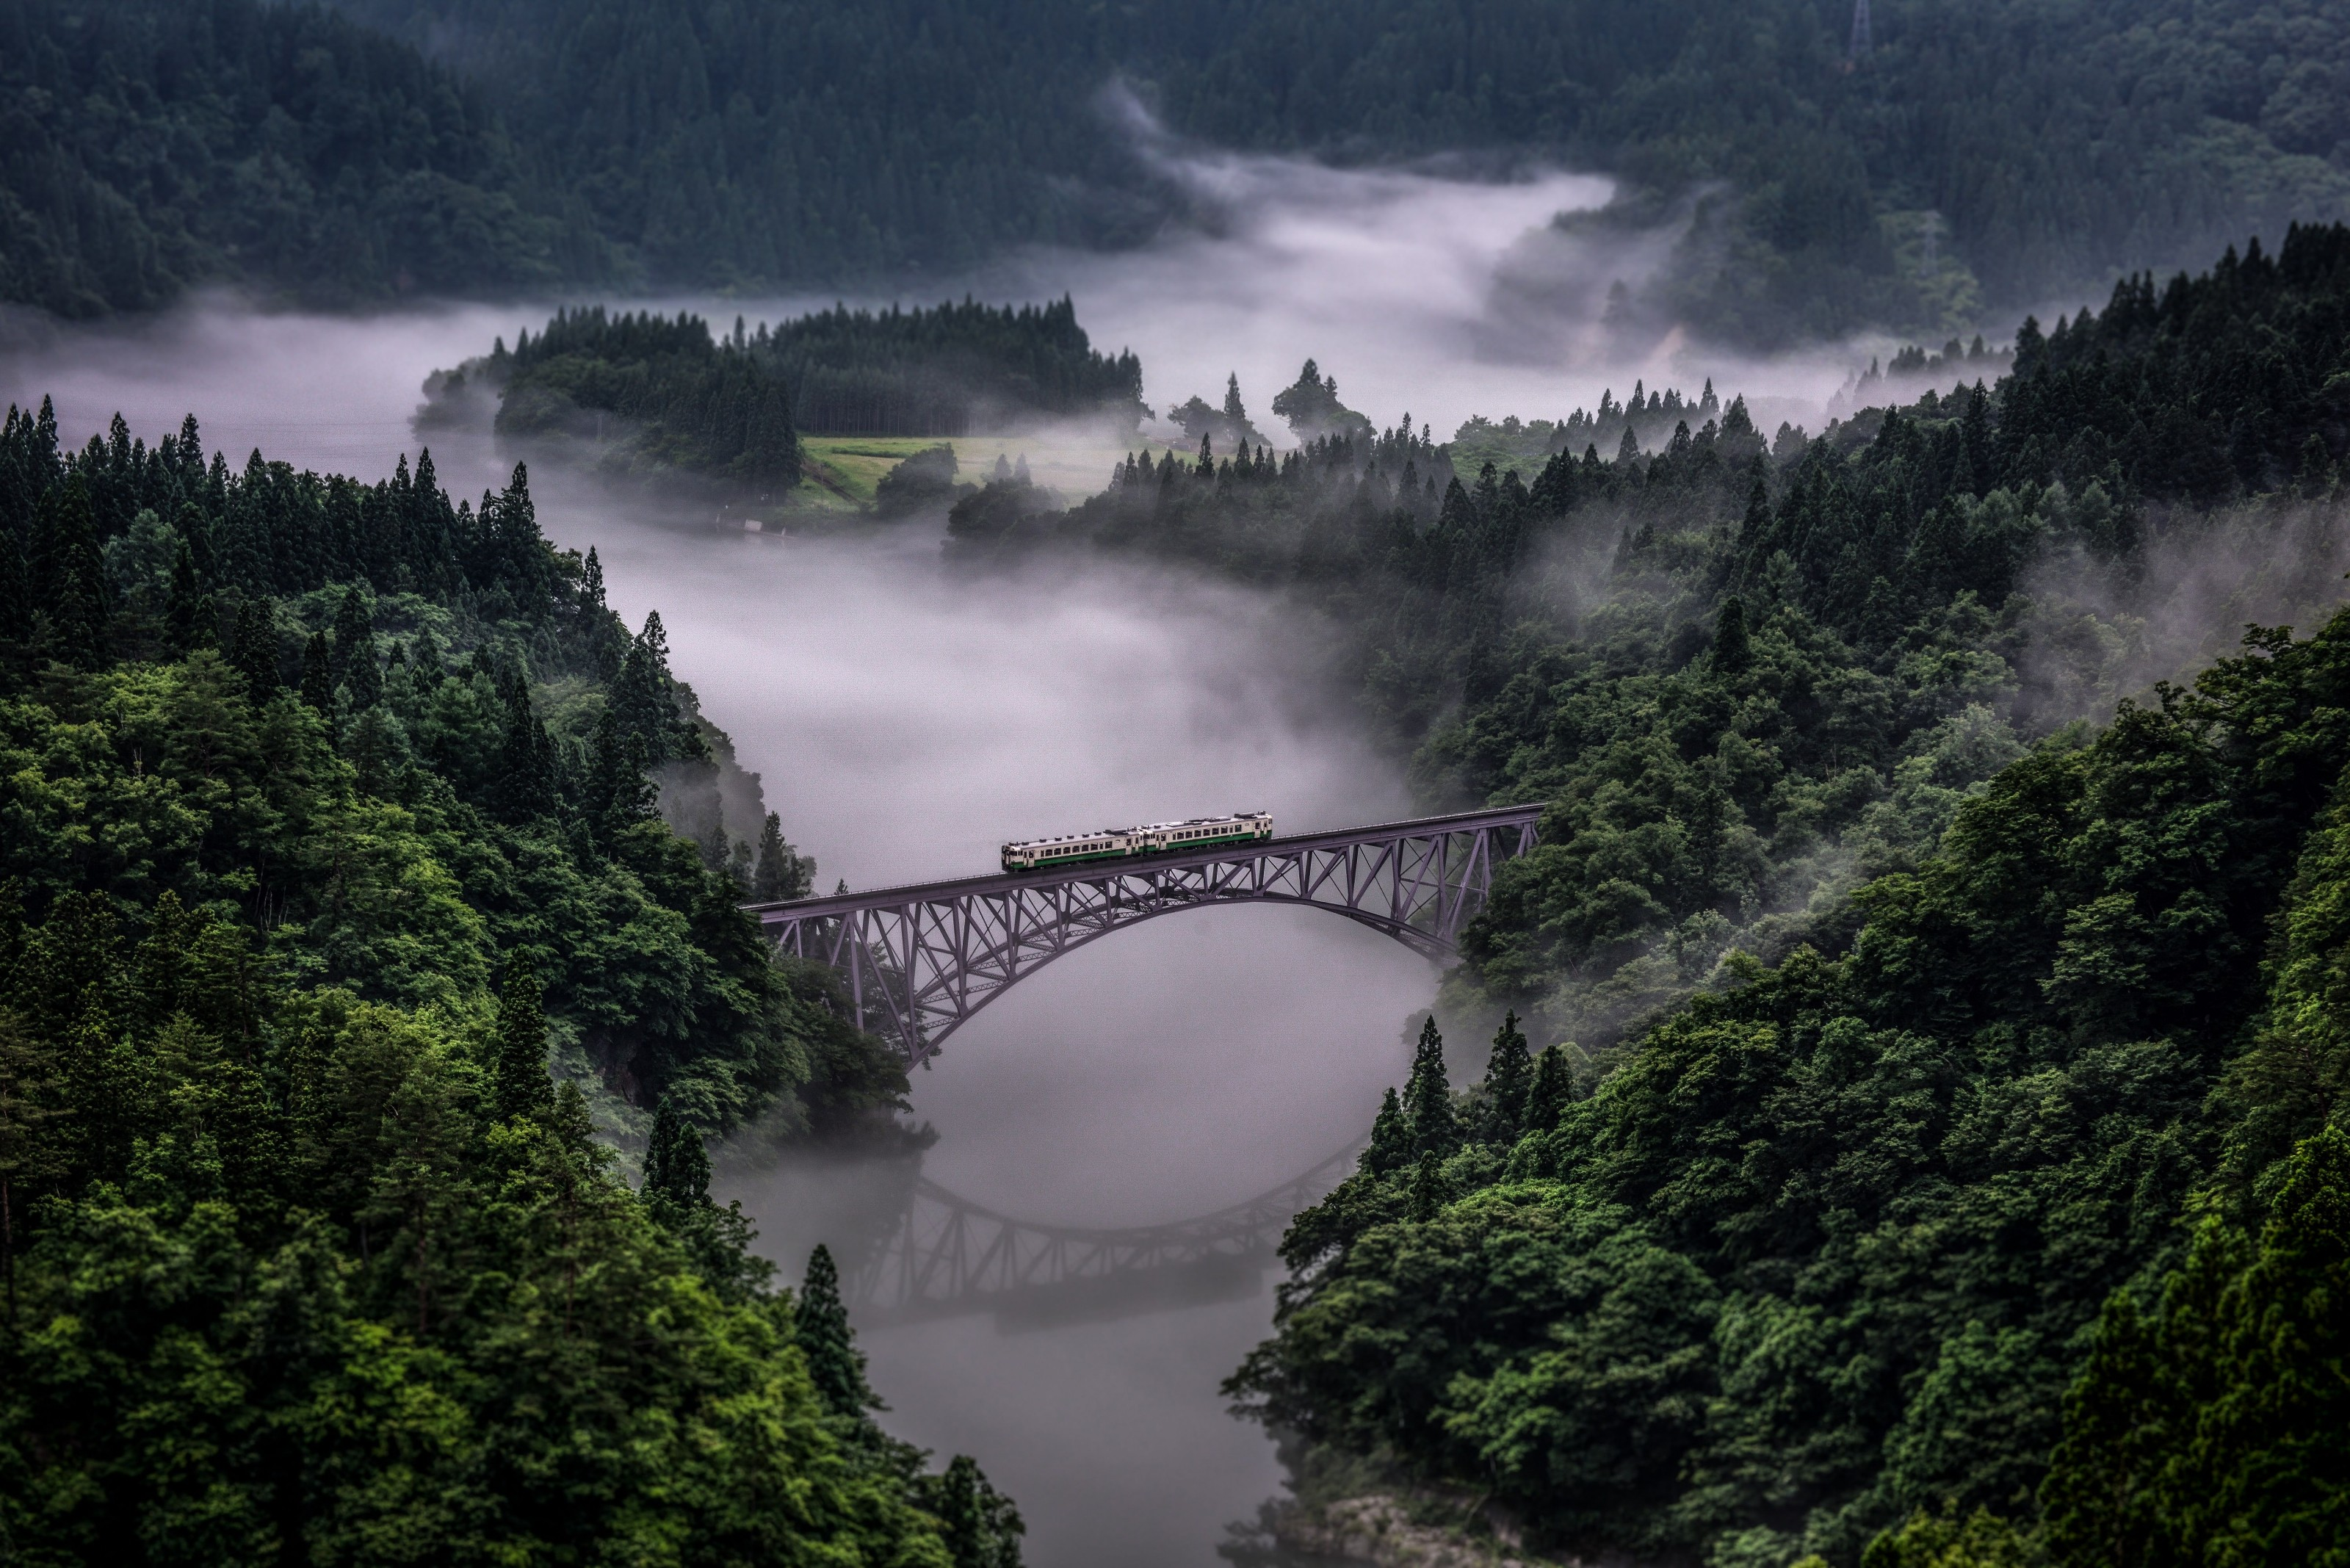 Picture of a train on a bridge in a misty Japanese forest